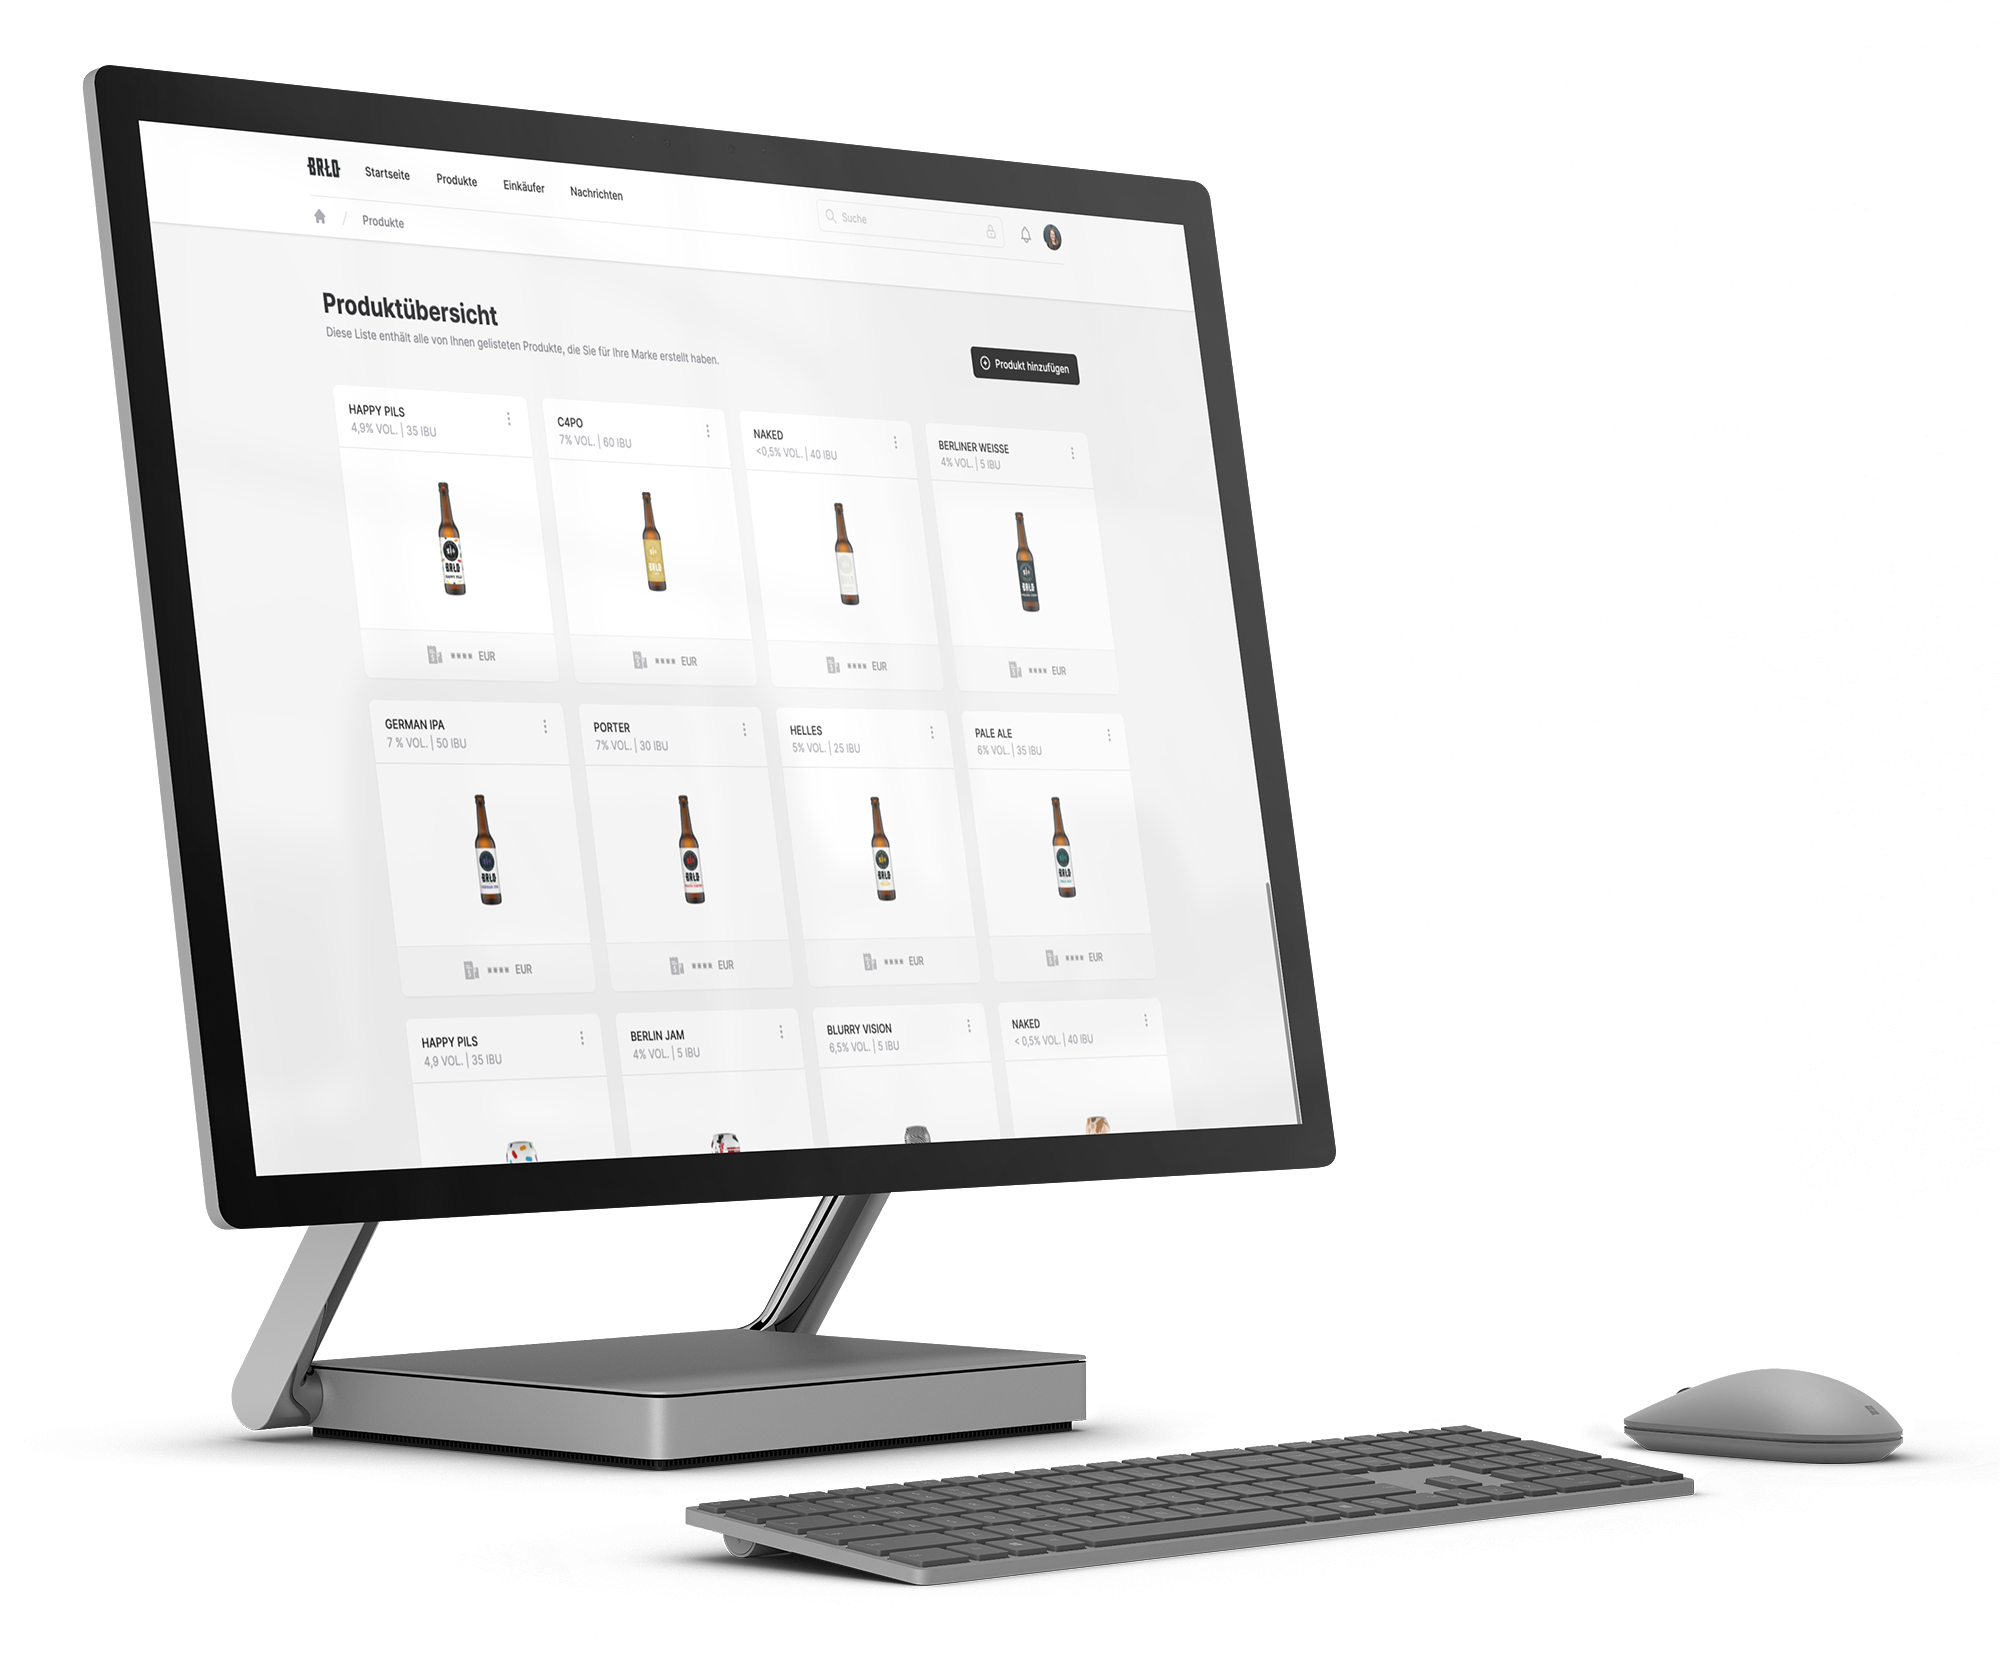 BRLO its personal product launches on FrontNow, displayed on a Microsoft Surface